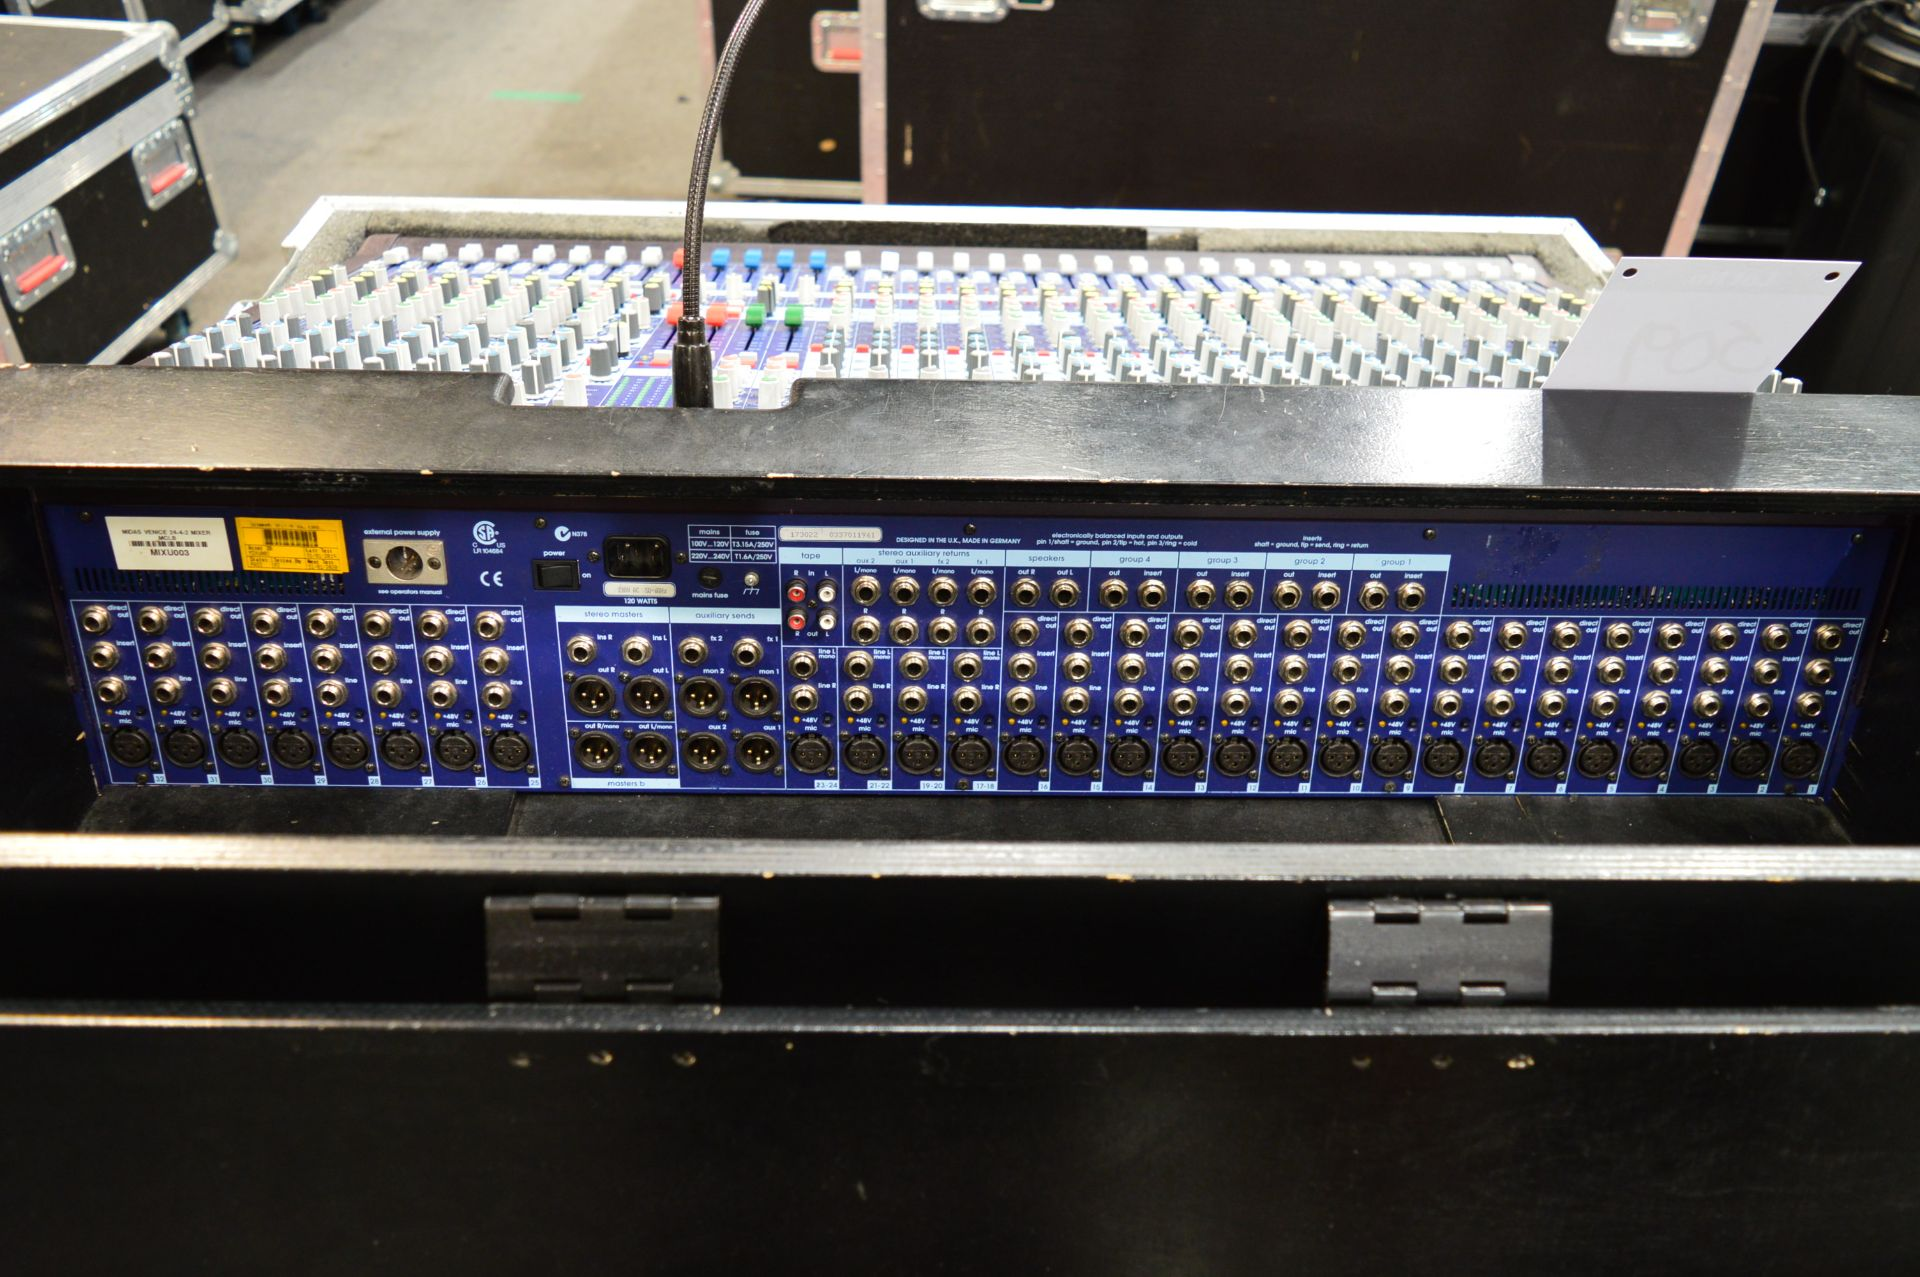 Lot 509 - Midas, Venice 320 32 channel professional live sou